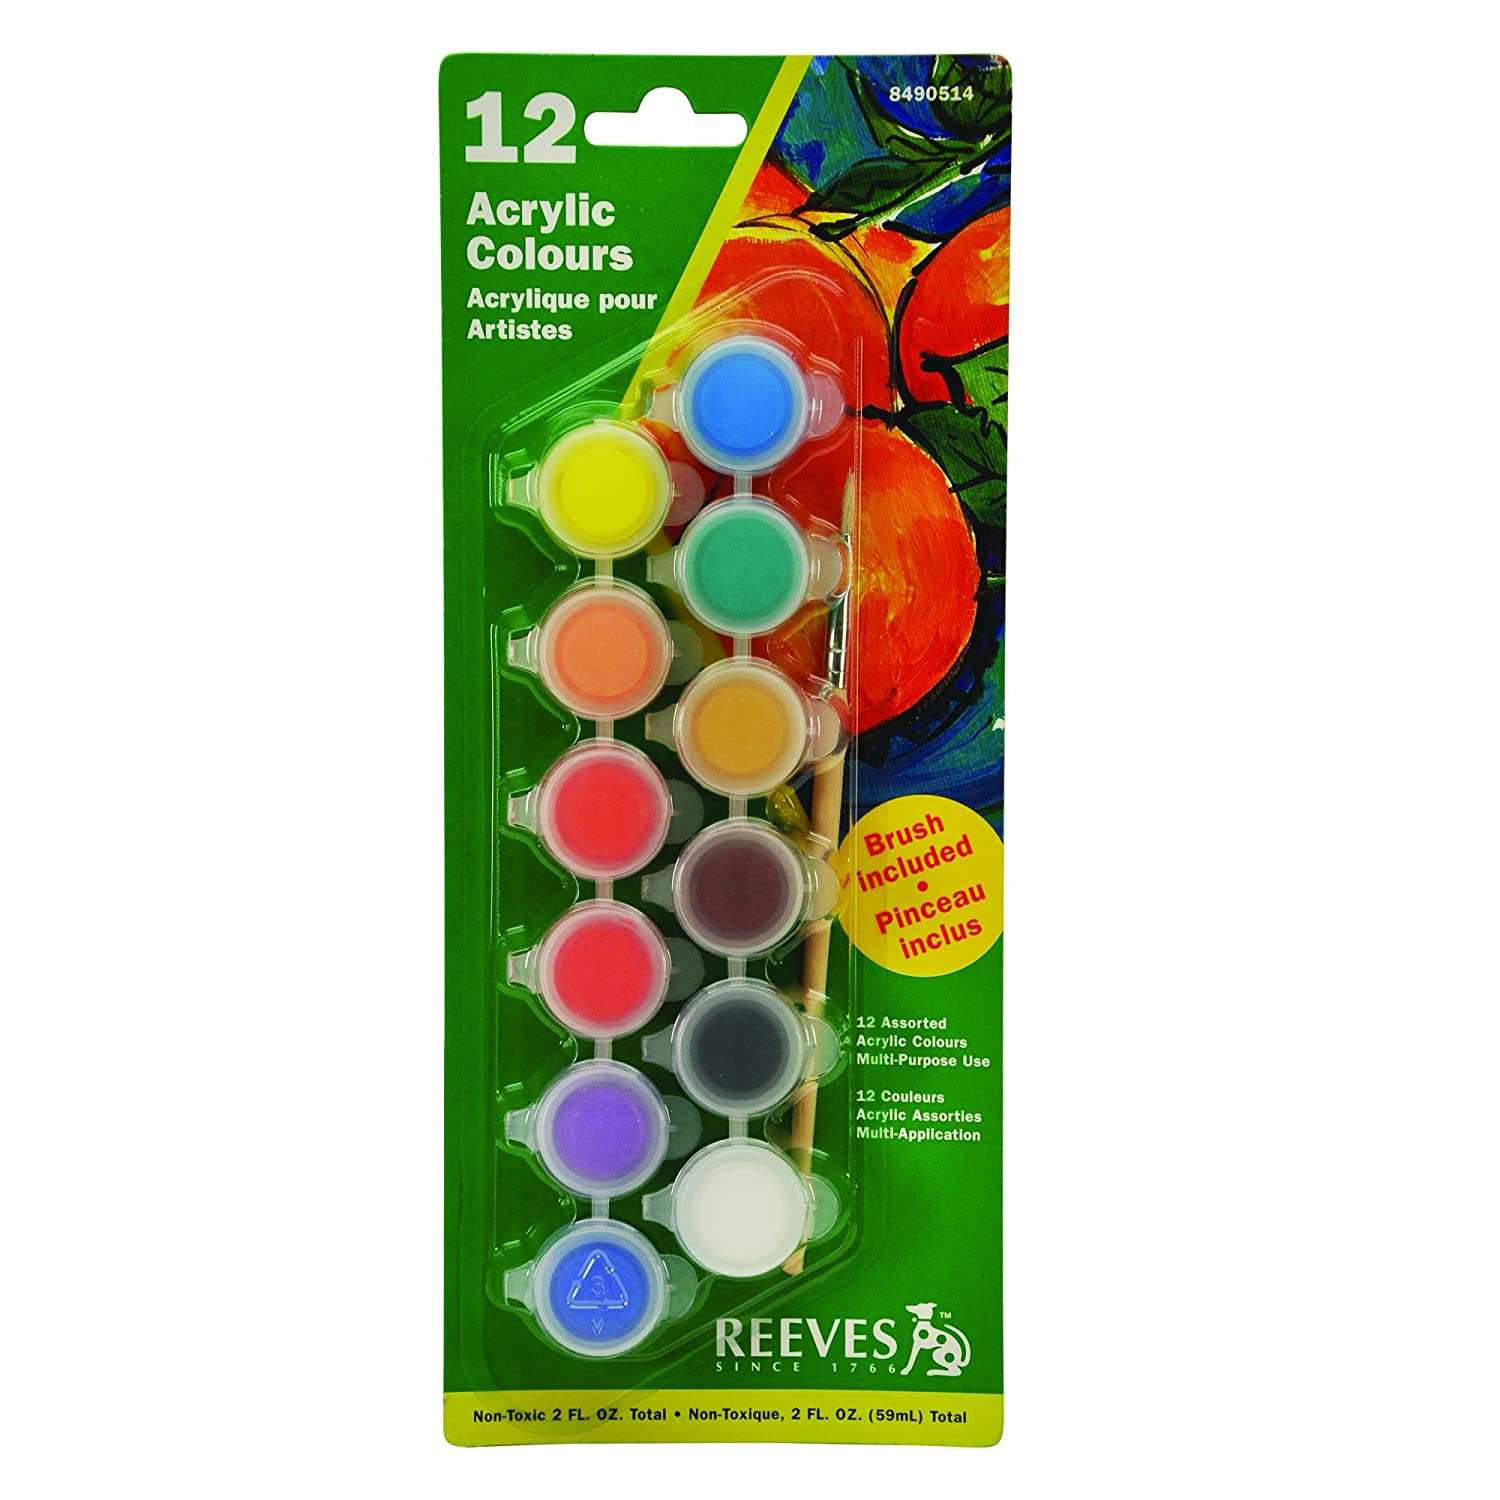 Amazon.com: Reeves Set of 12 Artist Acrylic Colour Pots with brush